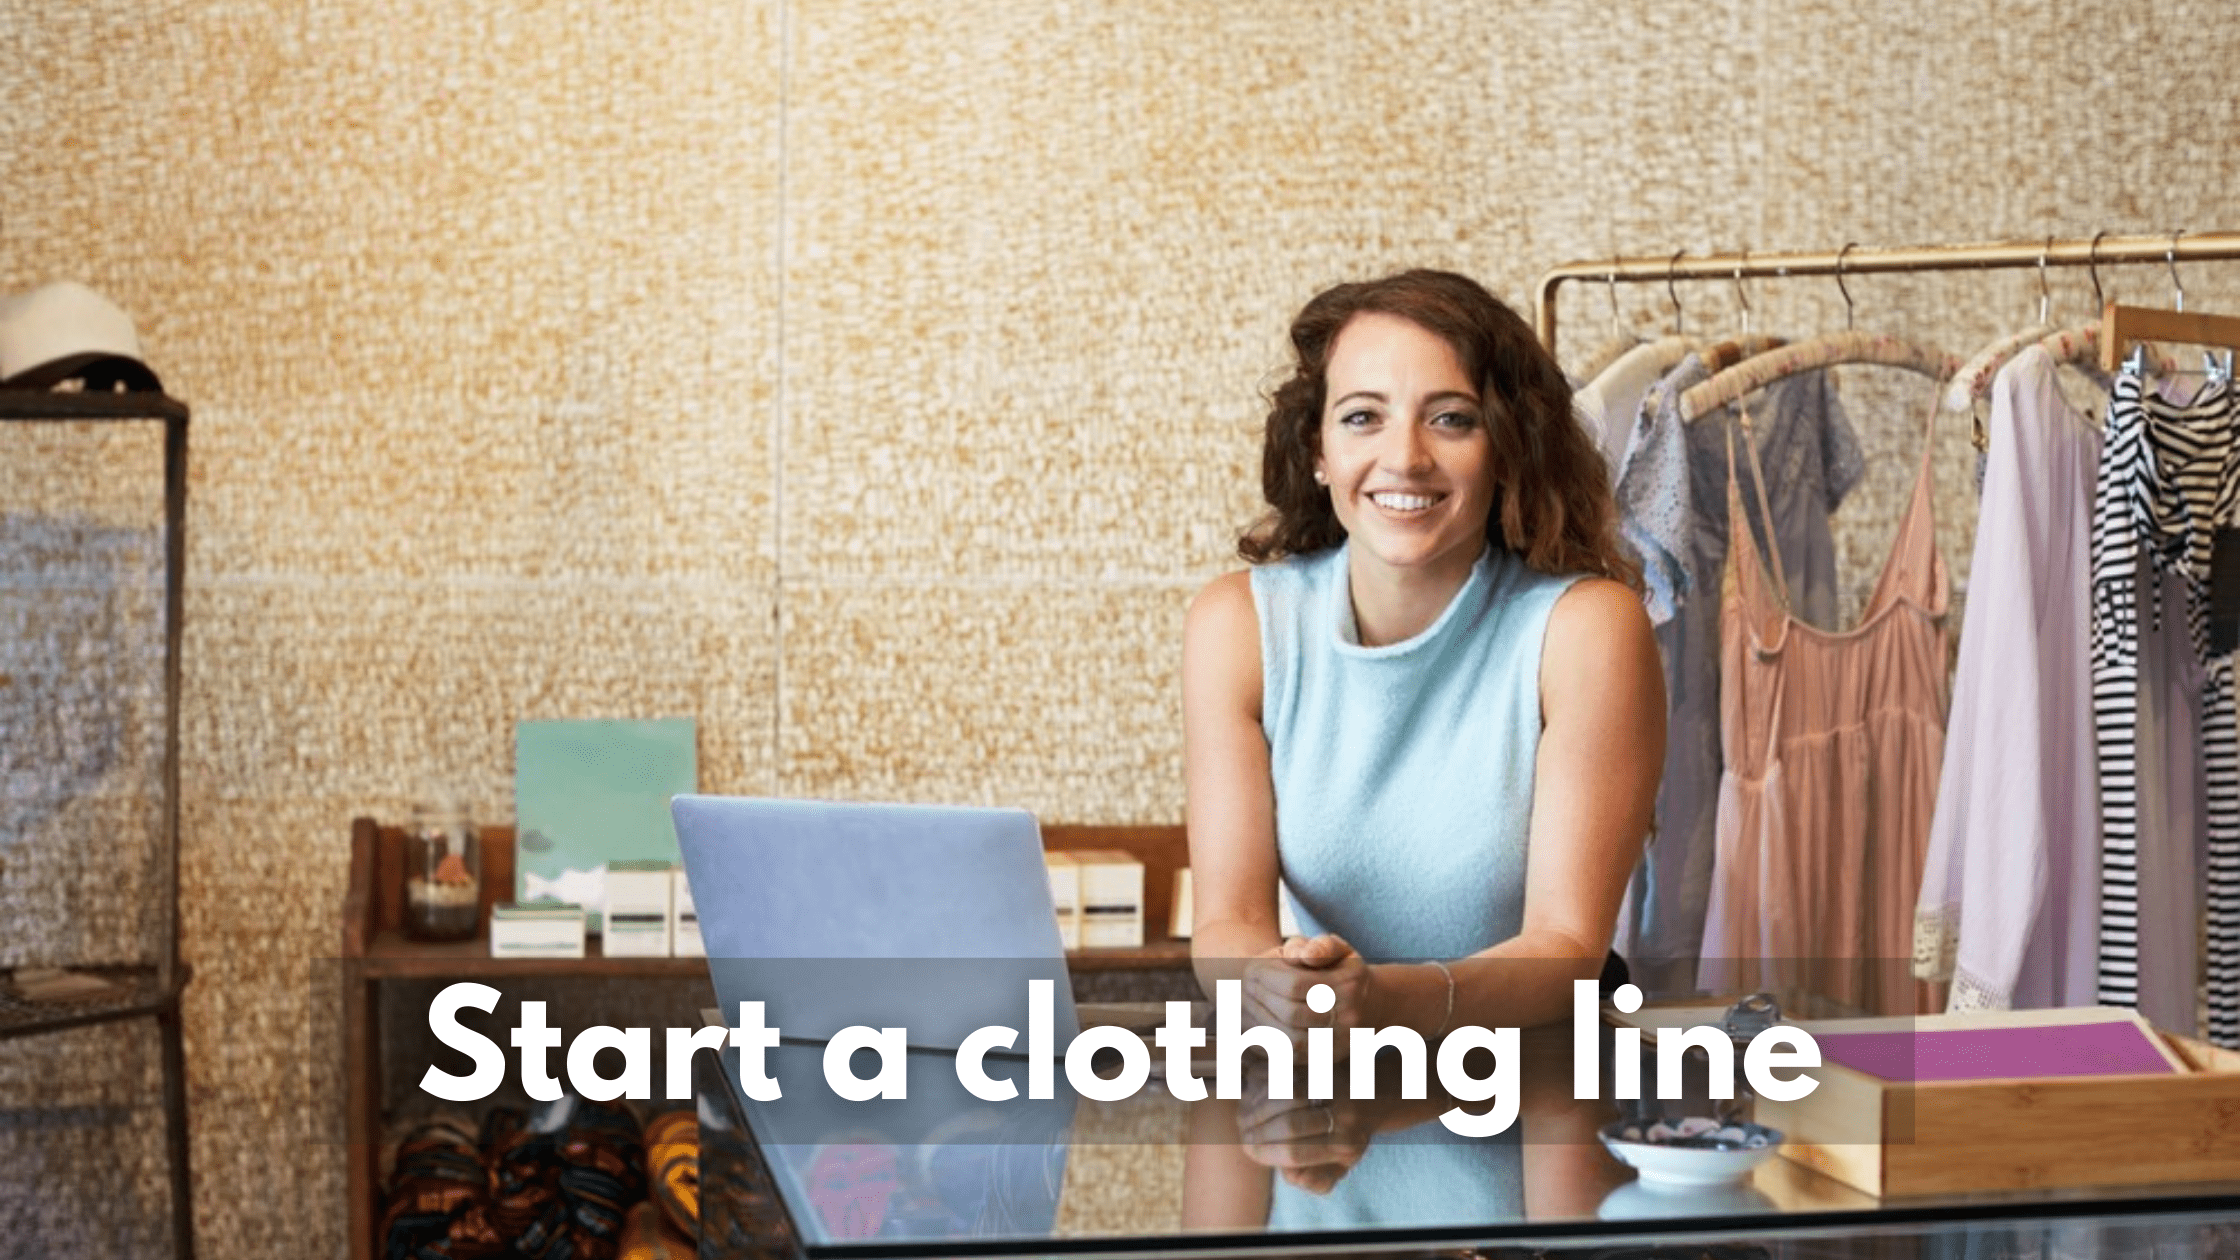 Start a clothing line